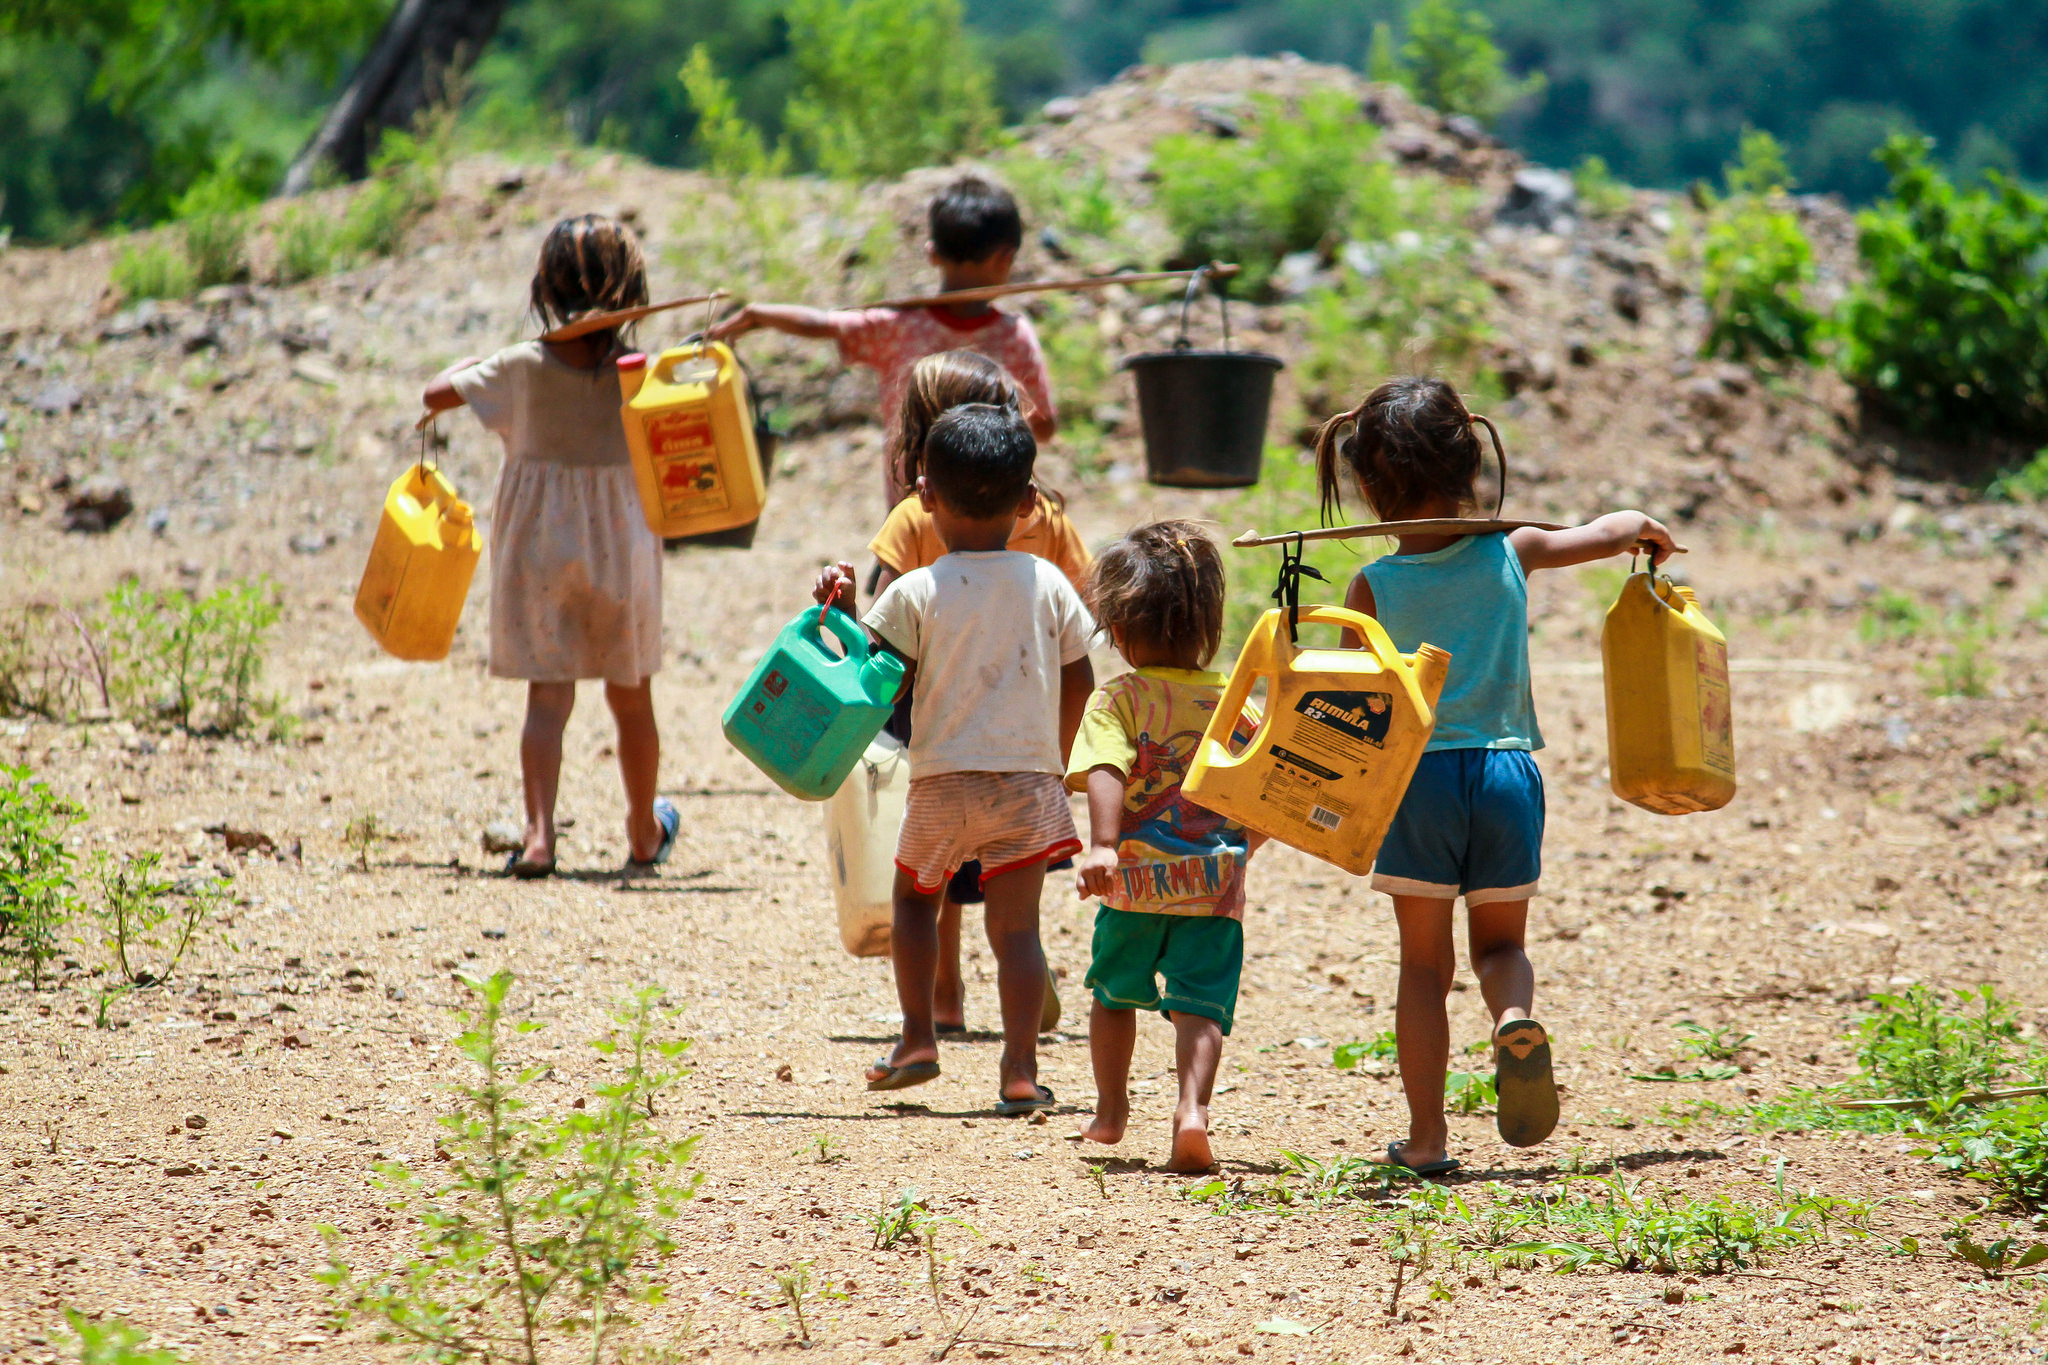 Children walking to a nearby river to get water in Lao PDR. Source:  Asia Development Bank, Flickr